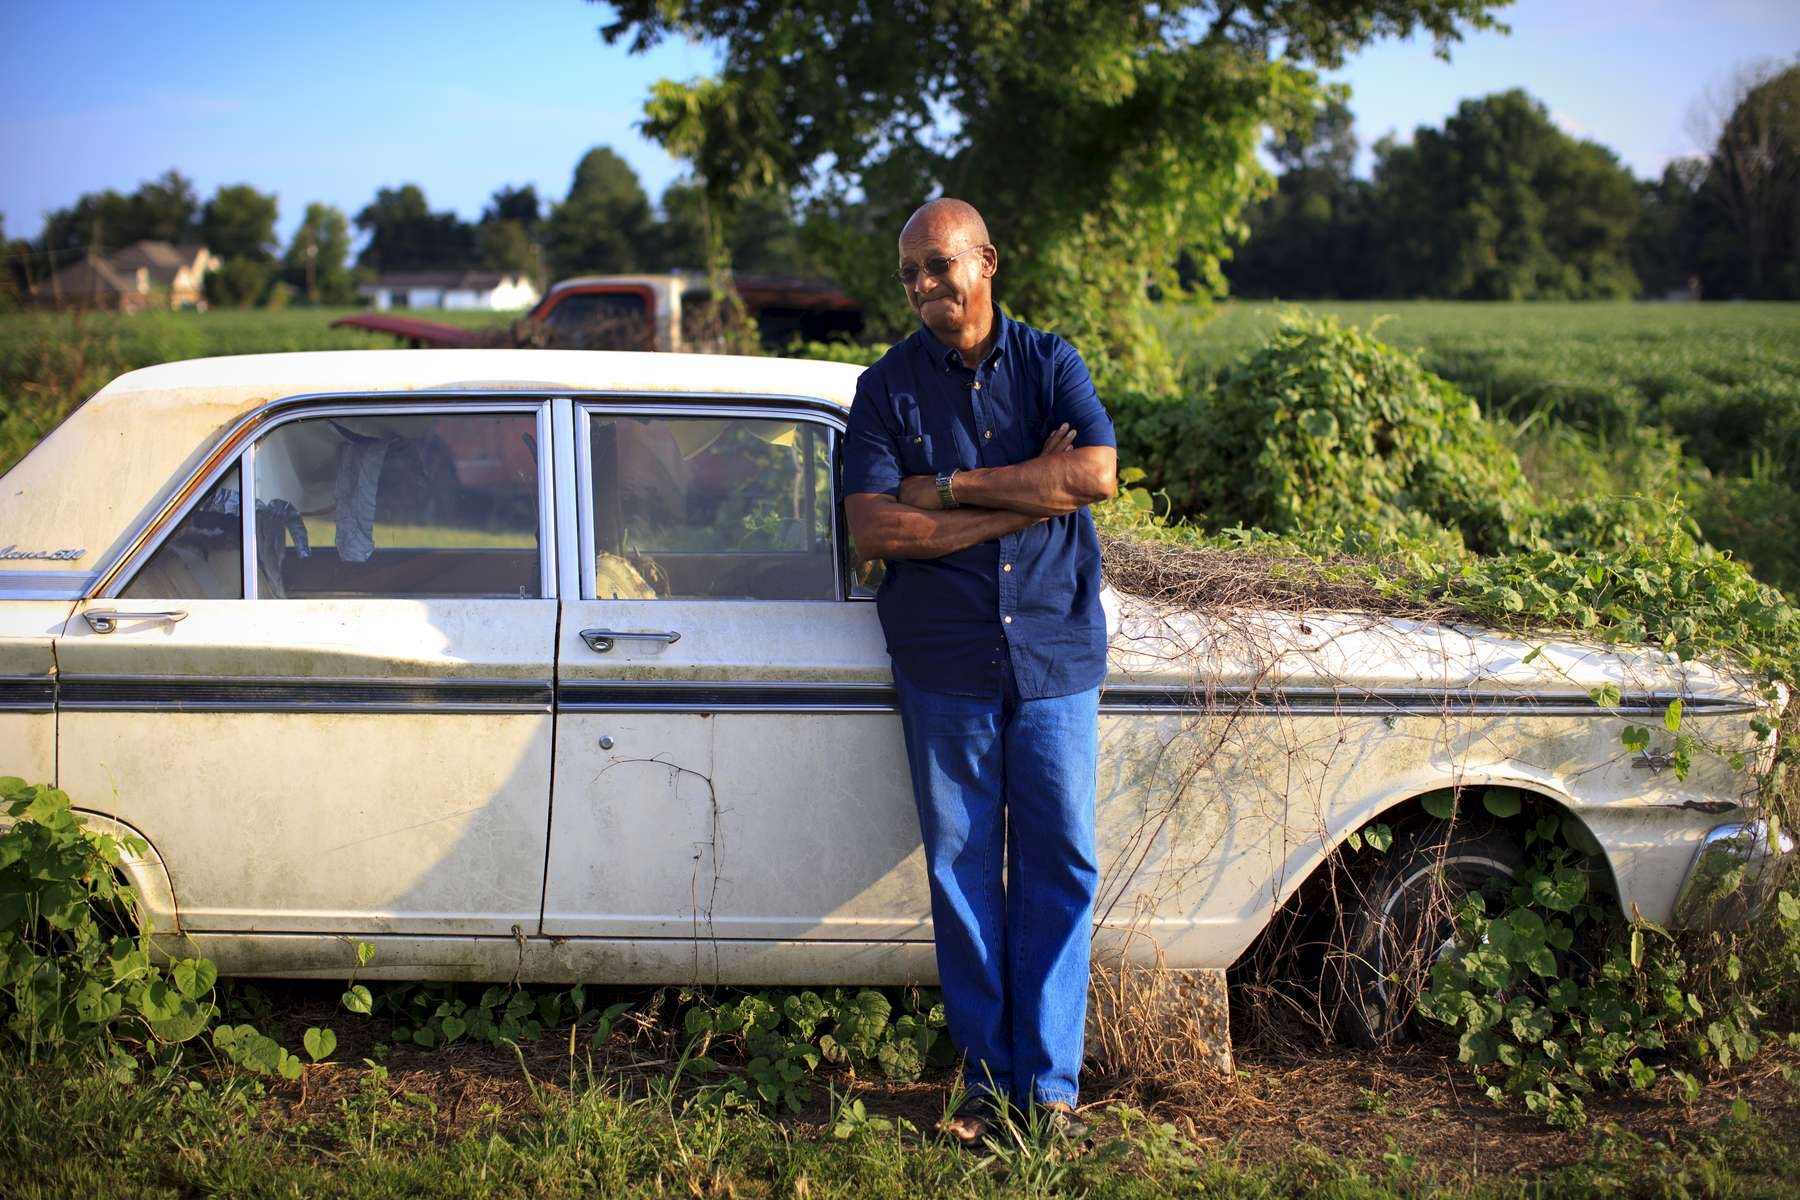 8/8/14 - Greenwood, MS - Silas McGhee, cq, was shot in the face in 1964 for his activism around Civil Rights. Here he is photographed at his farm in Greenwood, MS. Topic: 31freedom. Story by Eric Moskowitz/Globe Staff. Dina Rudick/Globe Staff